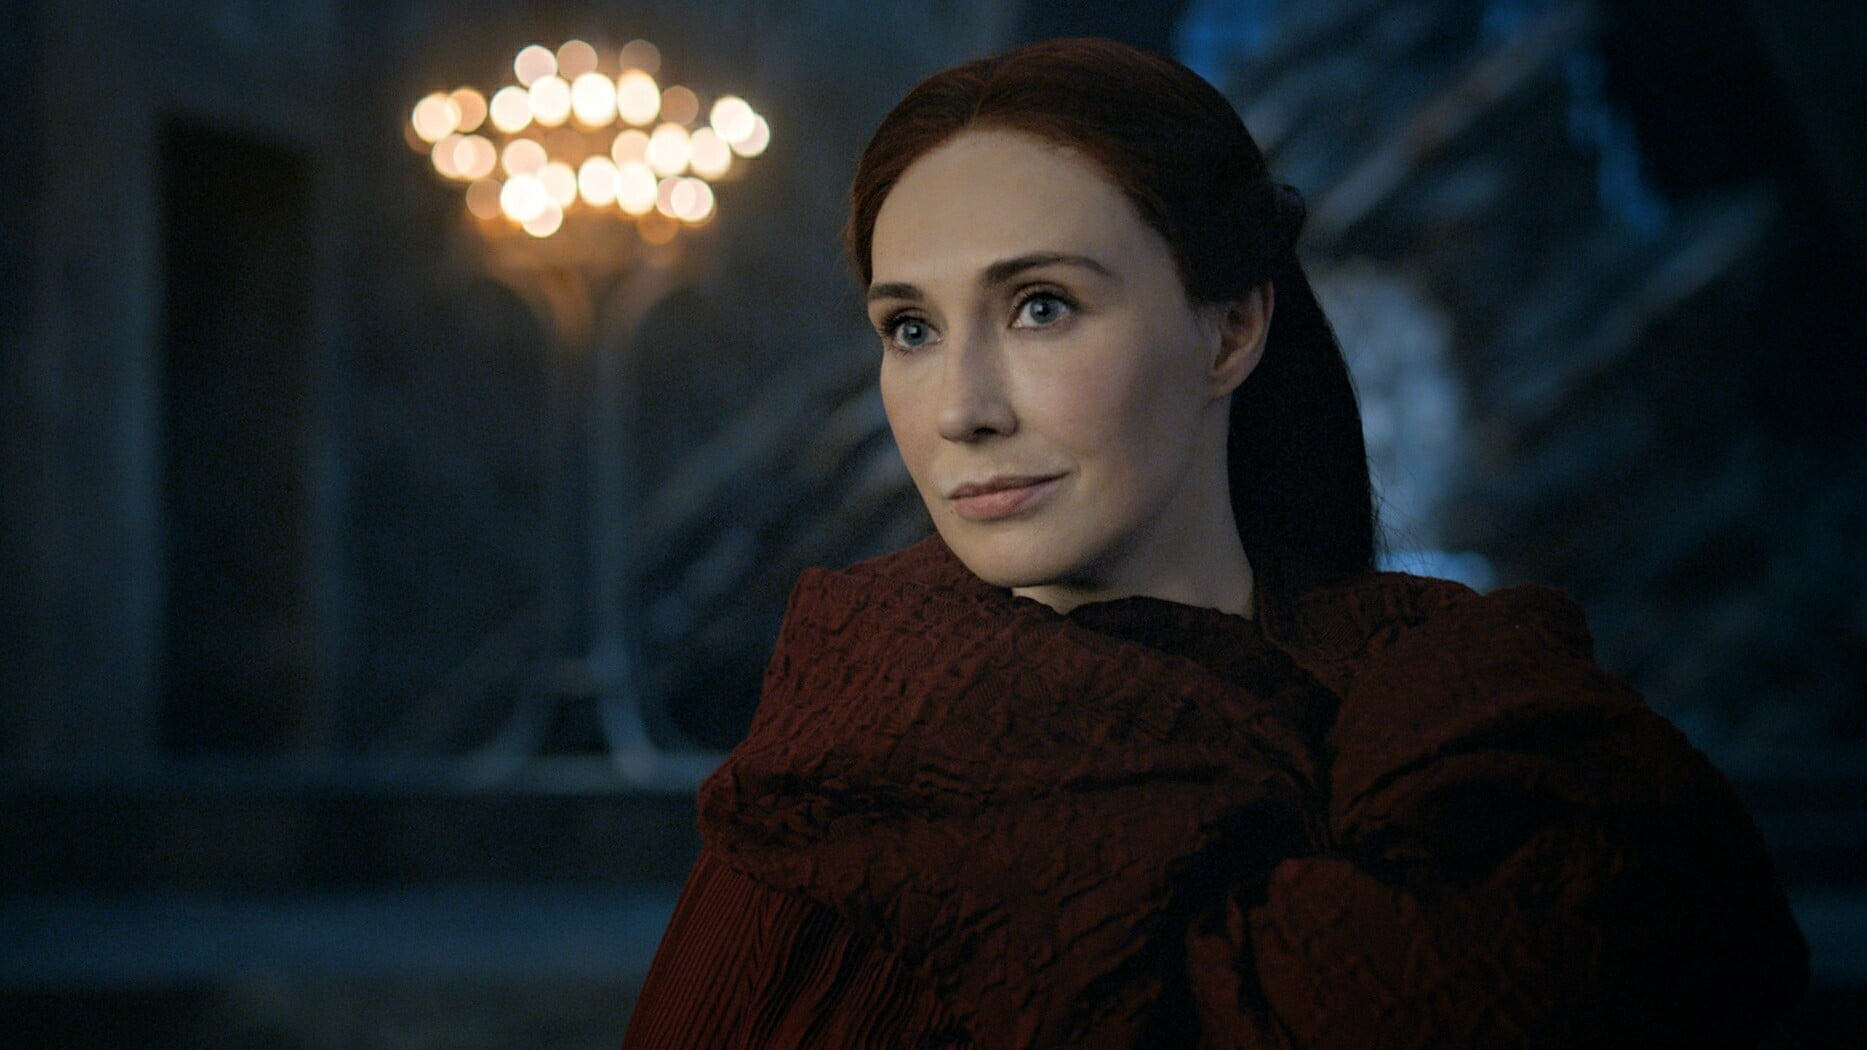 prophecy of promised prince melisandre